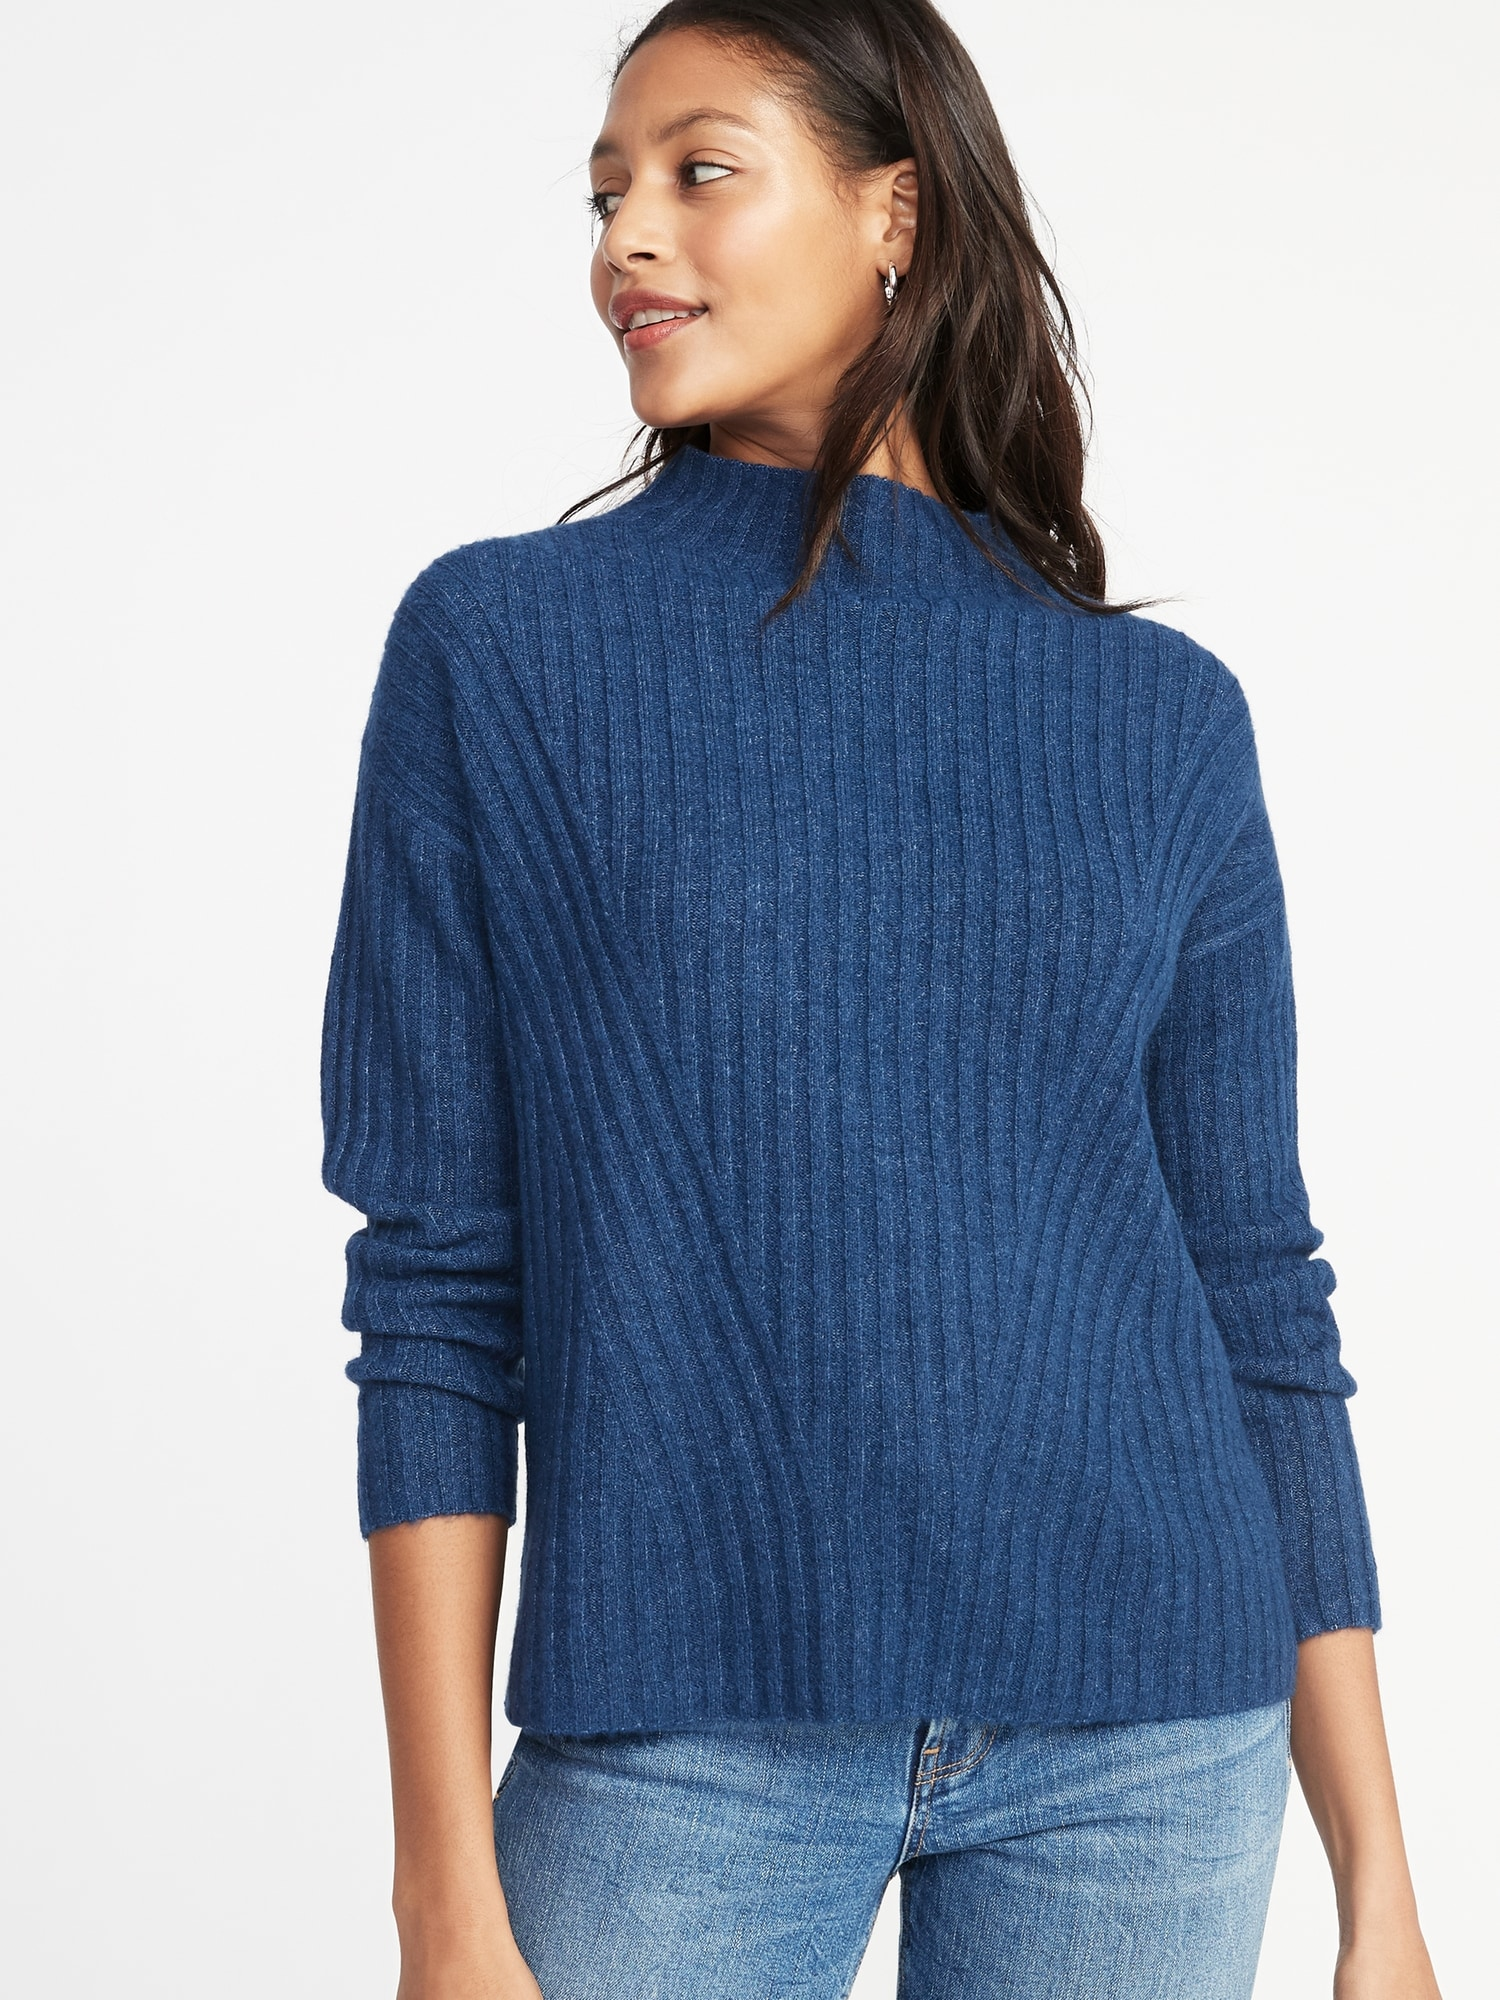 9a5784a5b1411 Mock-Neck Rib-Knit Sweater for Women | Old Navy